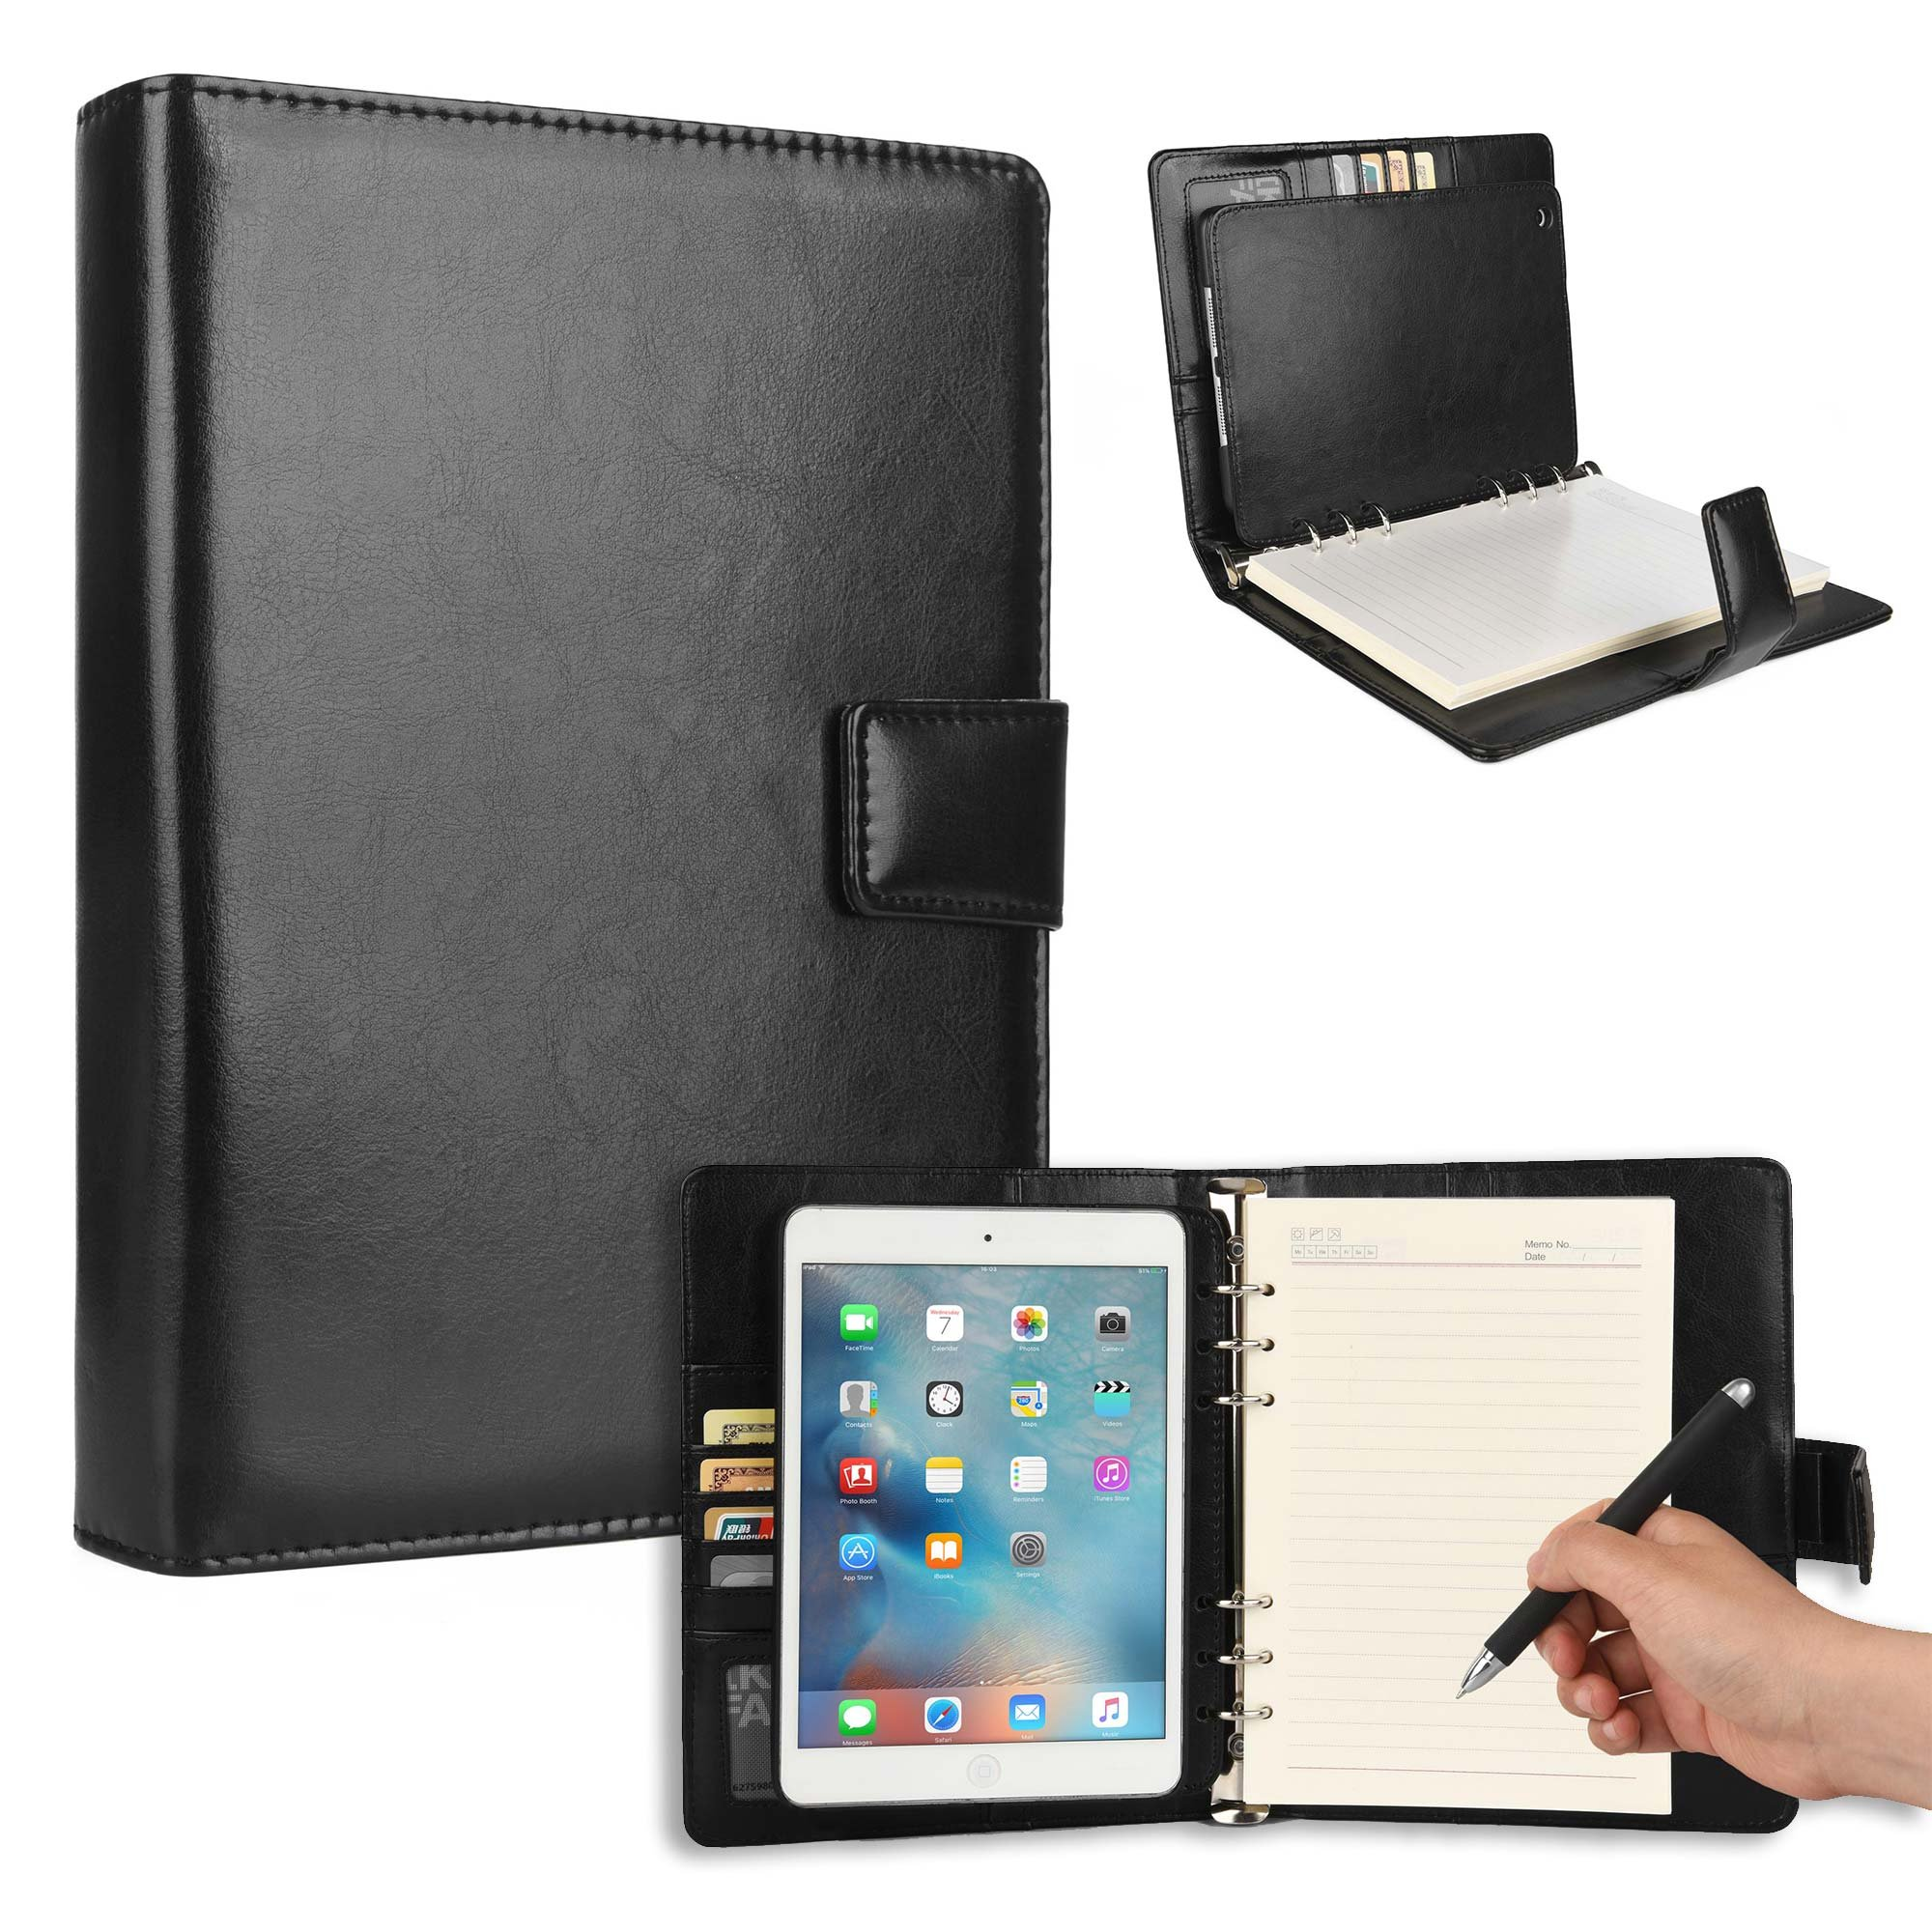 Cooper FOLDERTAB Padfolio Case Compatible with iPad Mini 3, iPad Mini 2, iPad Mini 1 | Business Executive Organizer with Notepad | Vegan Leather, Left Right Handed Binder, Notebook Refill (Black)